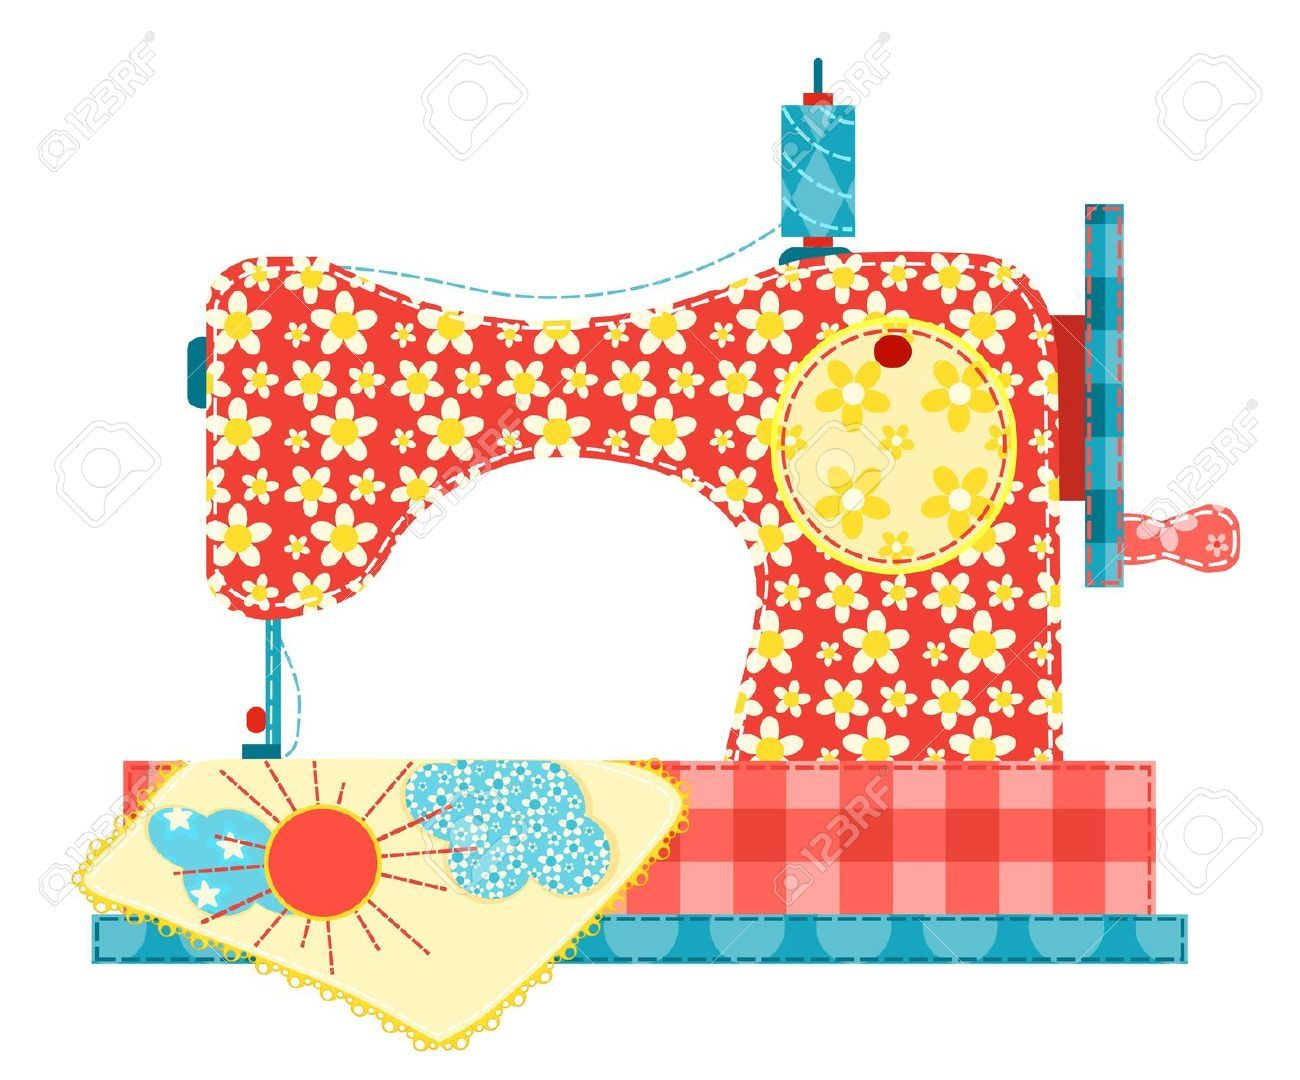 Sewing Stock Photos Images Royalty Free Sewing Images And